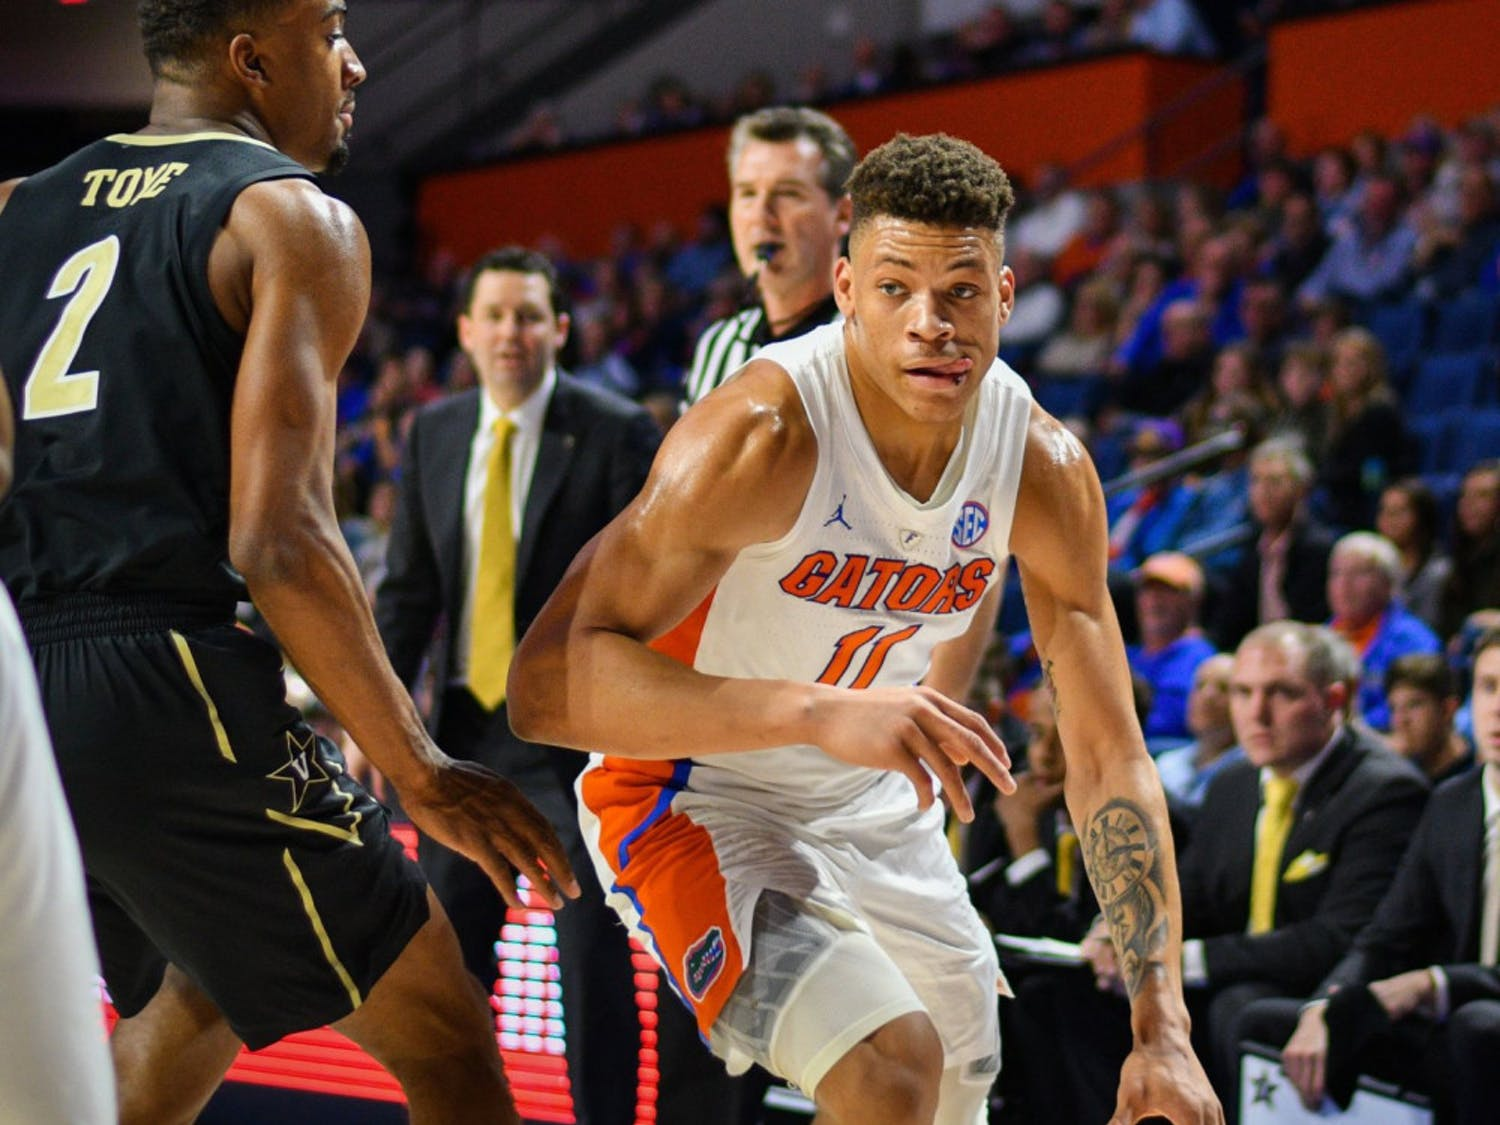 Freshman Keyontae Johnson scored a team-high 15 points and collected nine rebounds in the Gators' 66-57 win over Vanderbilt Wednesday night.